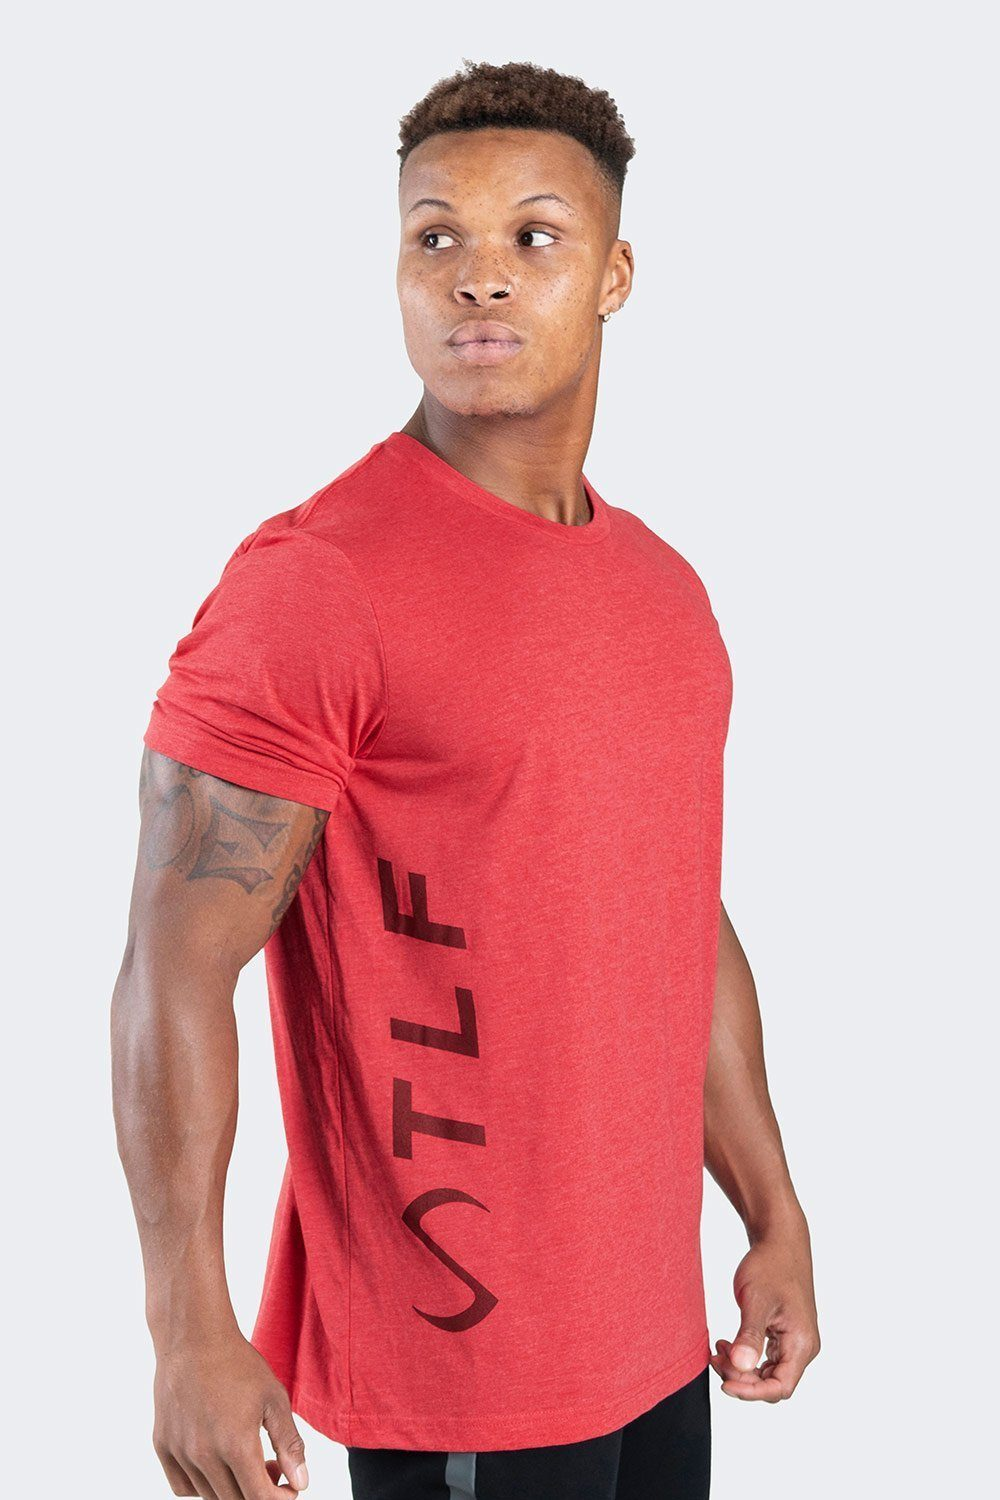 TLF Elevate T-Shirt - GRAPHIC T-SHIRTS - TLF Apparel | Take Life Further